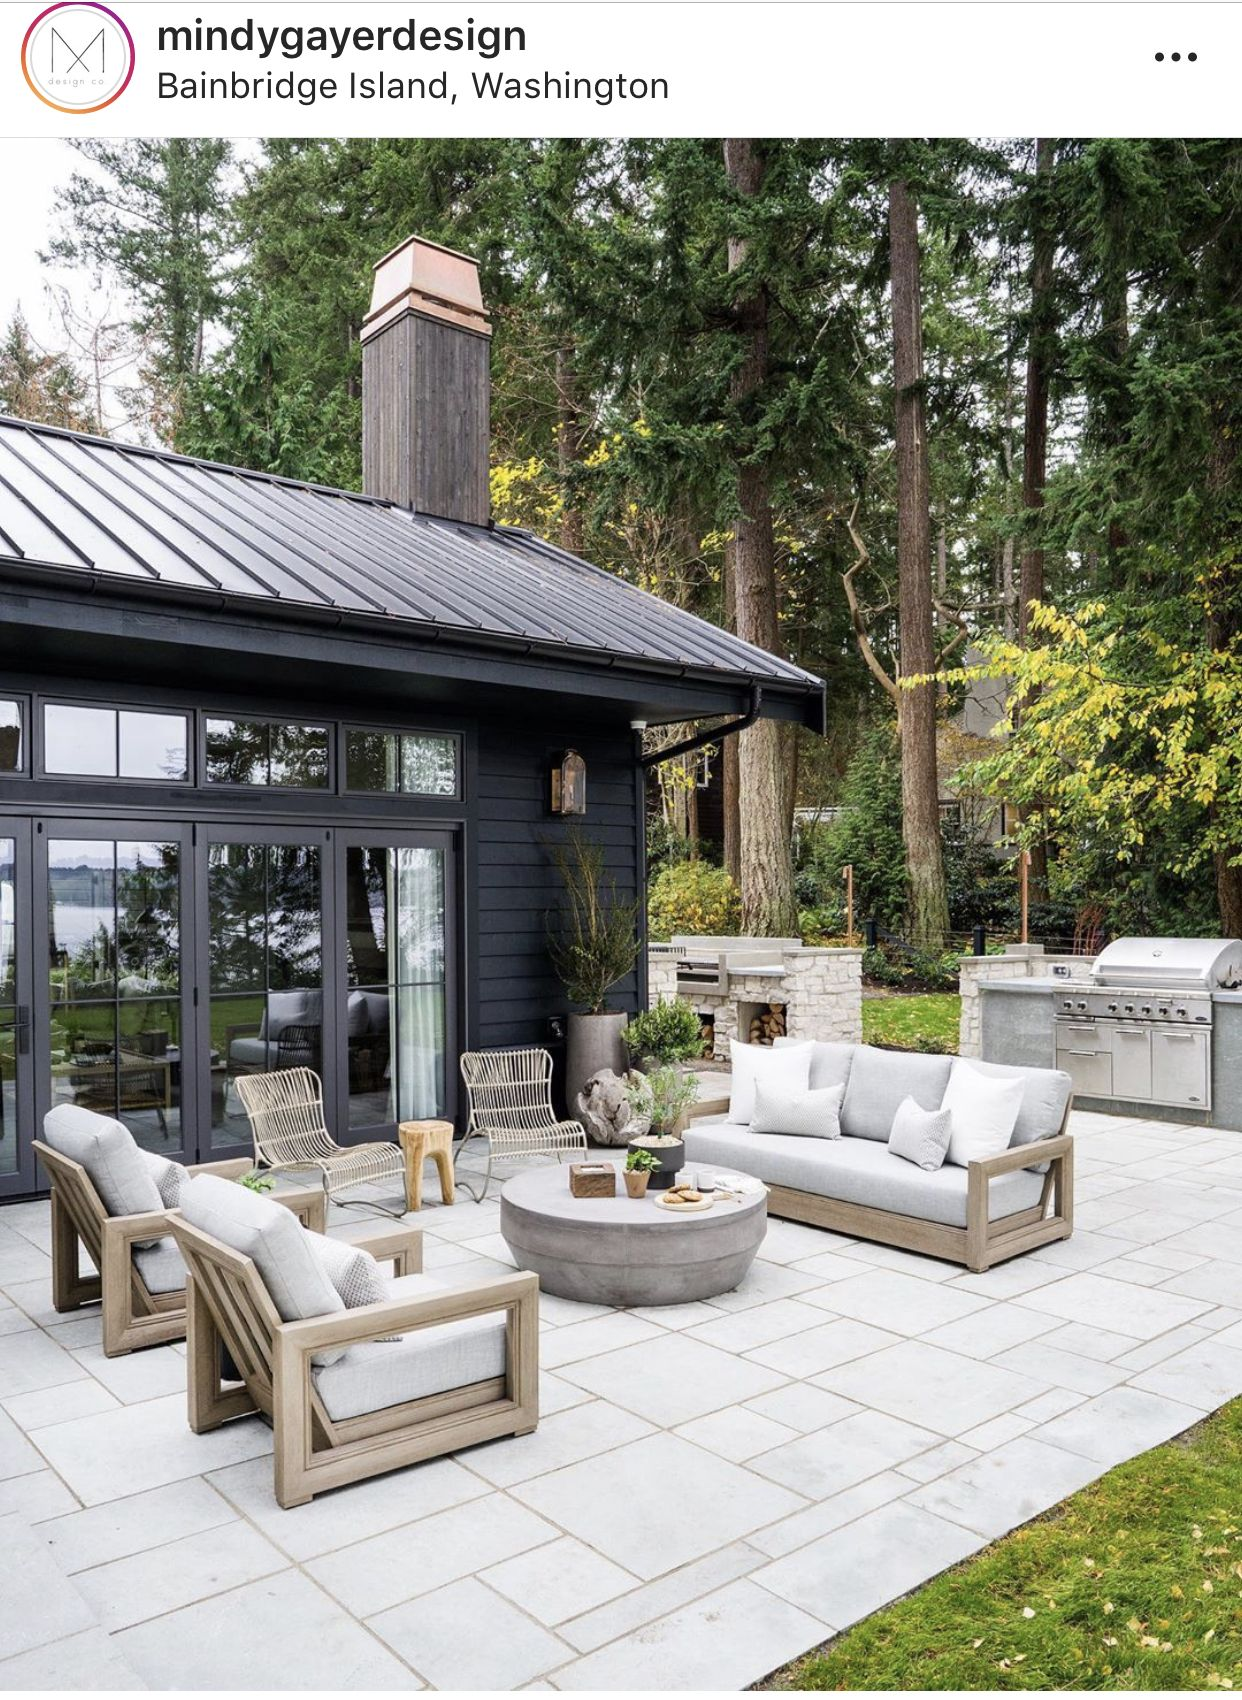 Pin By Melissa Johnson On Patio Backyard Remodel Beautiful Outdoor Living Spaces Outdoor Patio Ideas Backyards